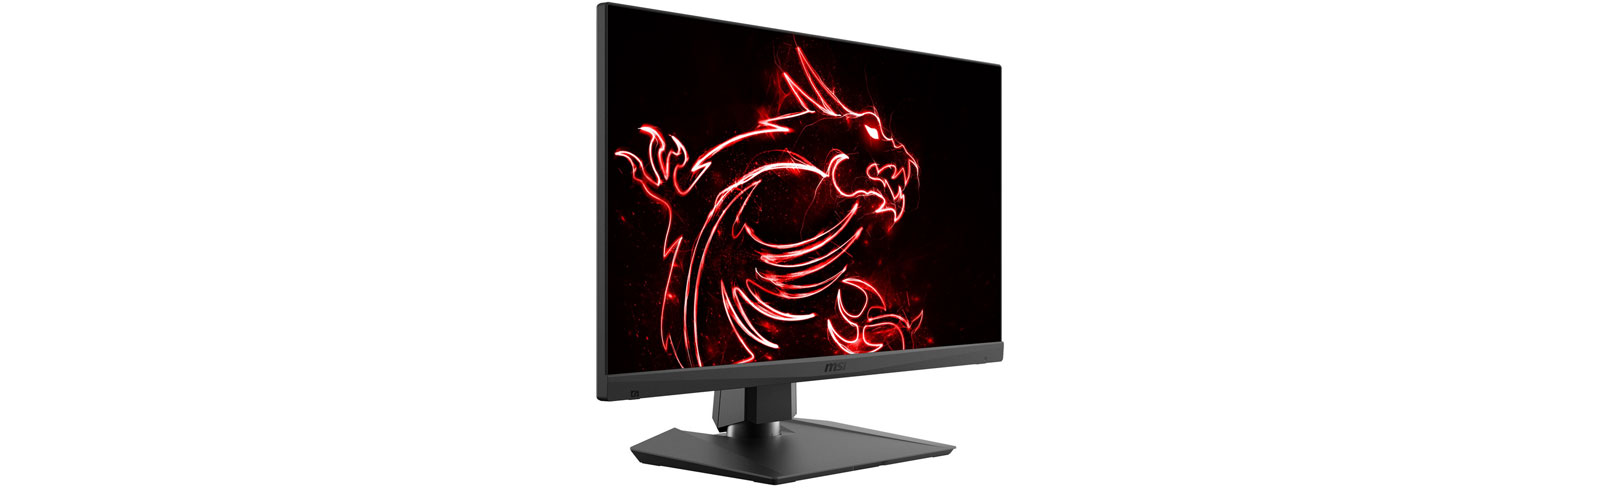 """The MSI MAG274QRF is a new 27"""" QHD gaming monitor with a Fast IPS display, 165Hz refresh rate"""